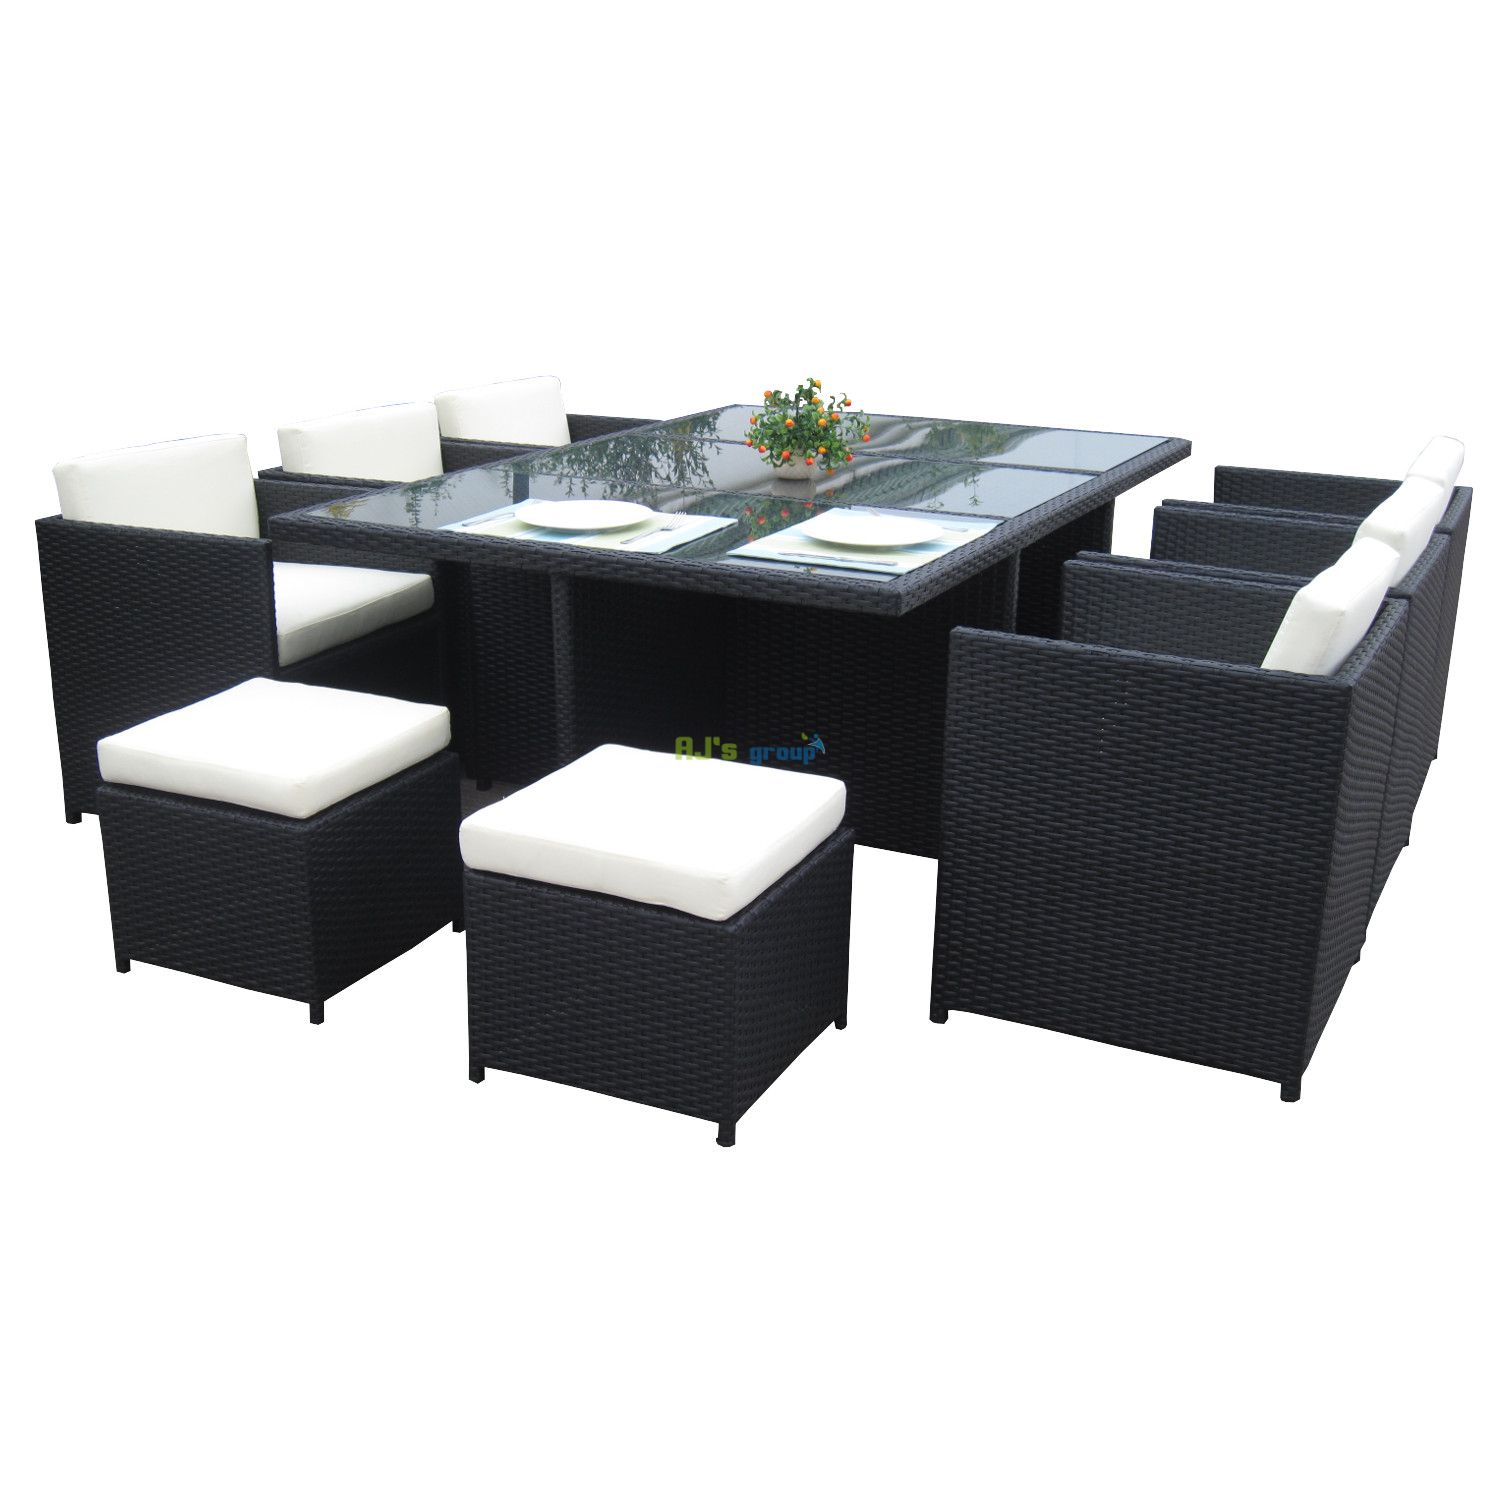 poly rattan essgruppe san diego alu gartenm bel garnitur. Black Bedroom Furniture Sets. Home Design Ideas